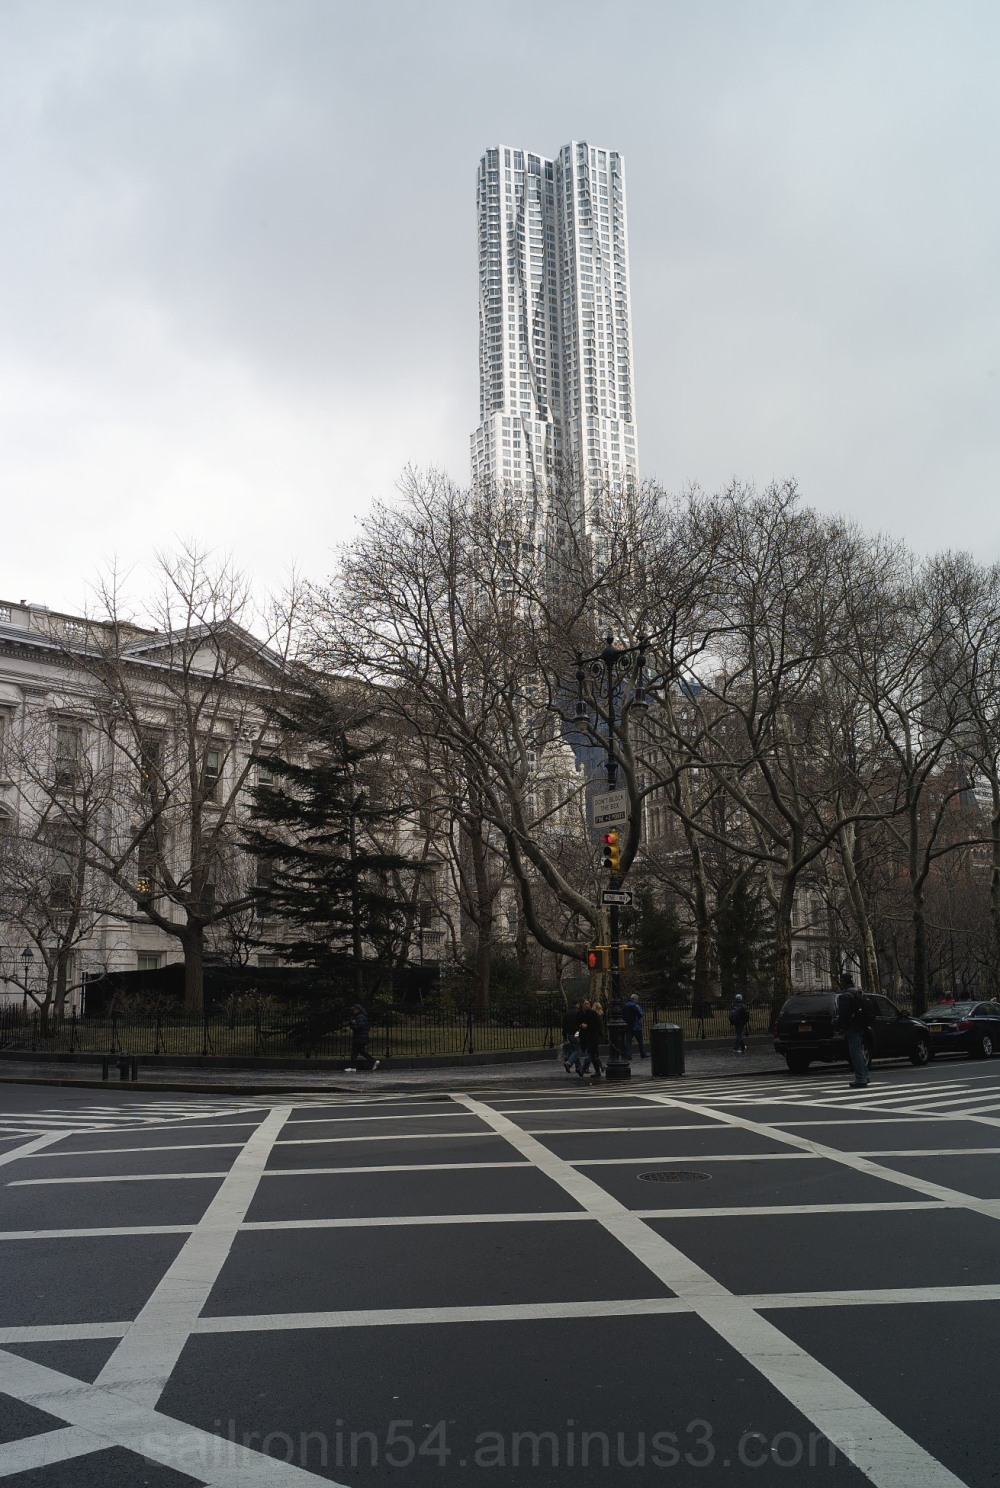 Tower at the park with crosswalk lines